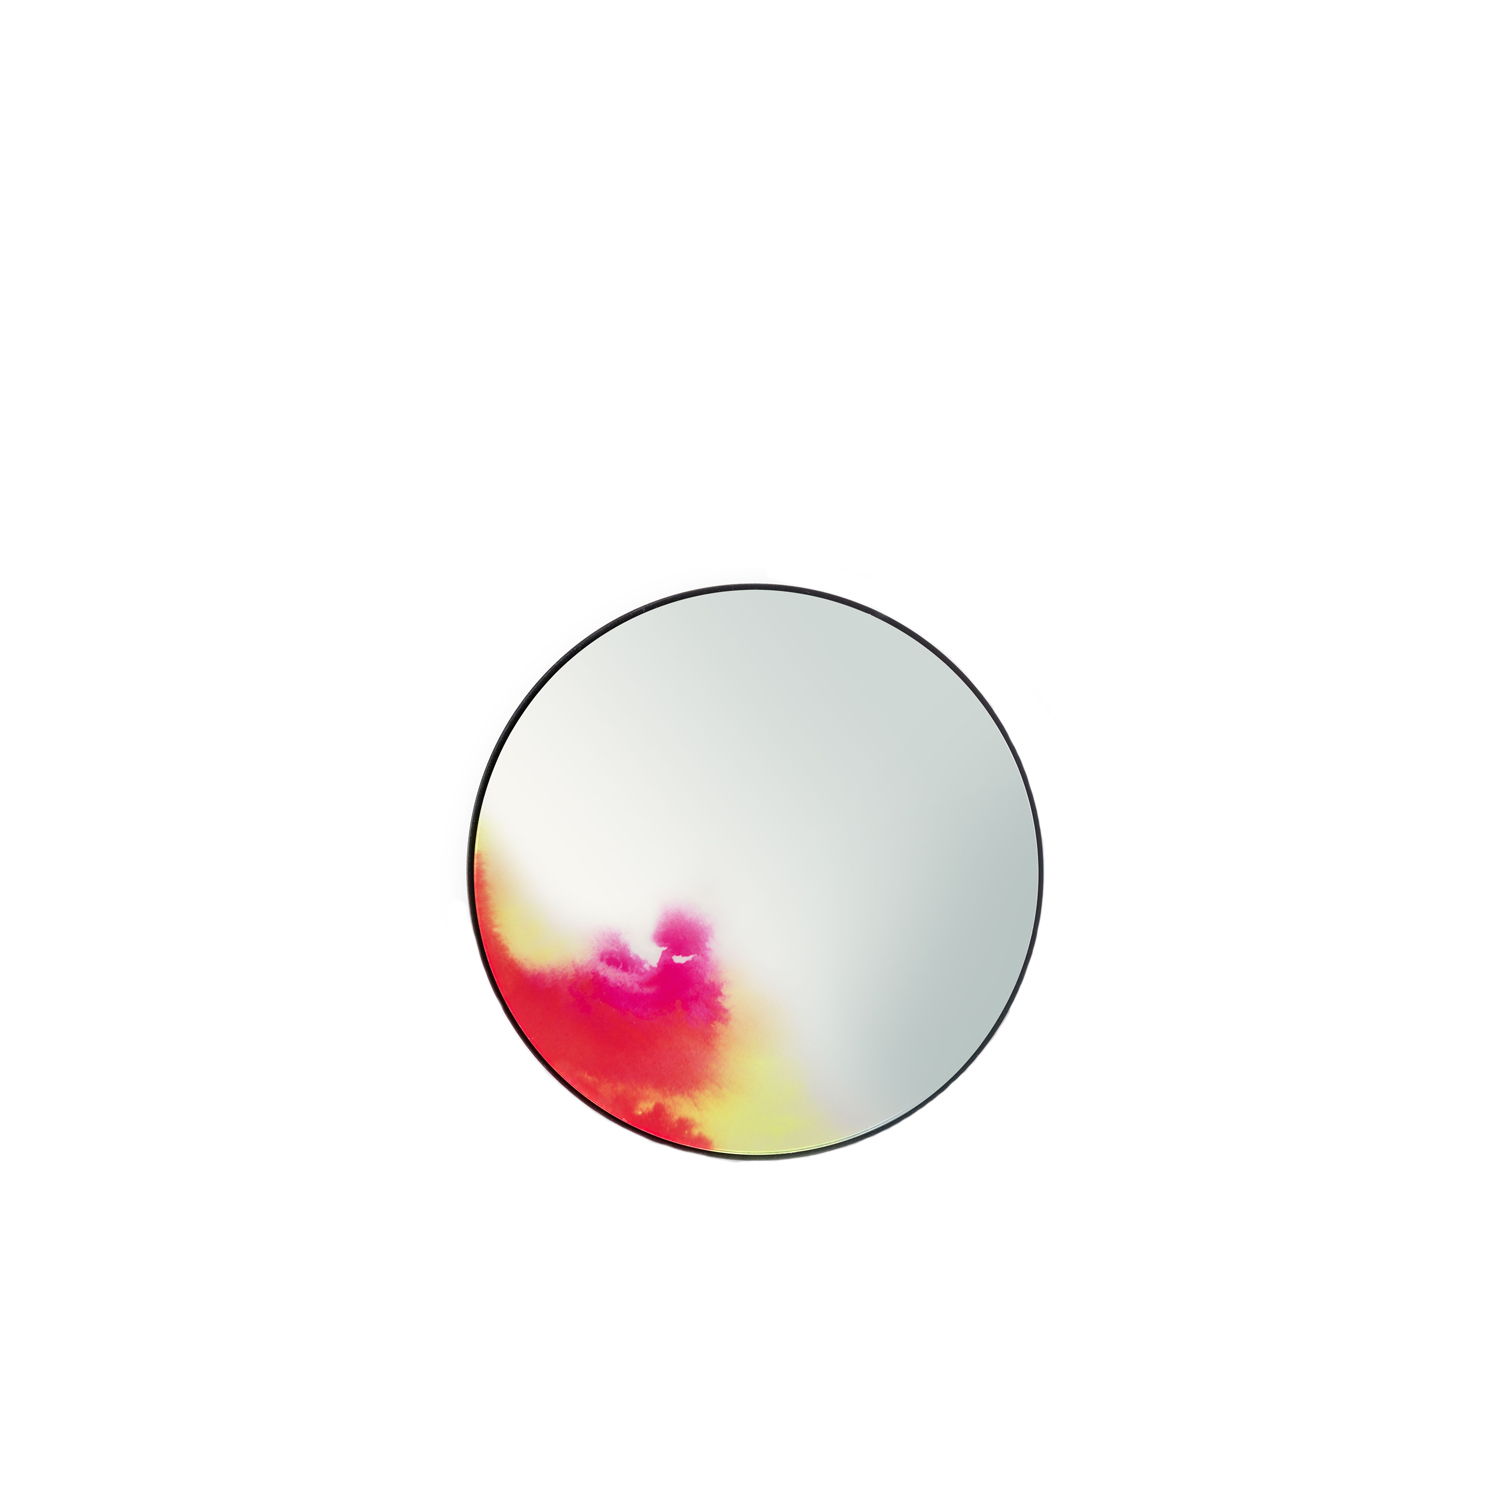 Francis Wall Mirror - Pink S - The wall mirror Francis evolved from an experience with pigmentation. The shifting colours on the periphery suggest the oxidation of antique mirrors or hues on a makeup palette. This observational design, with vivid and deep colours, is reflected inside the surface of each mirror by digital printing. The back of the mirror, slightly convex, is suspended through the centre, which allows the mirror to fall forward such as with venetian mirrors.